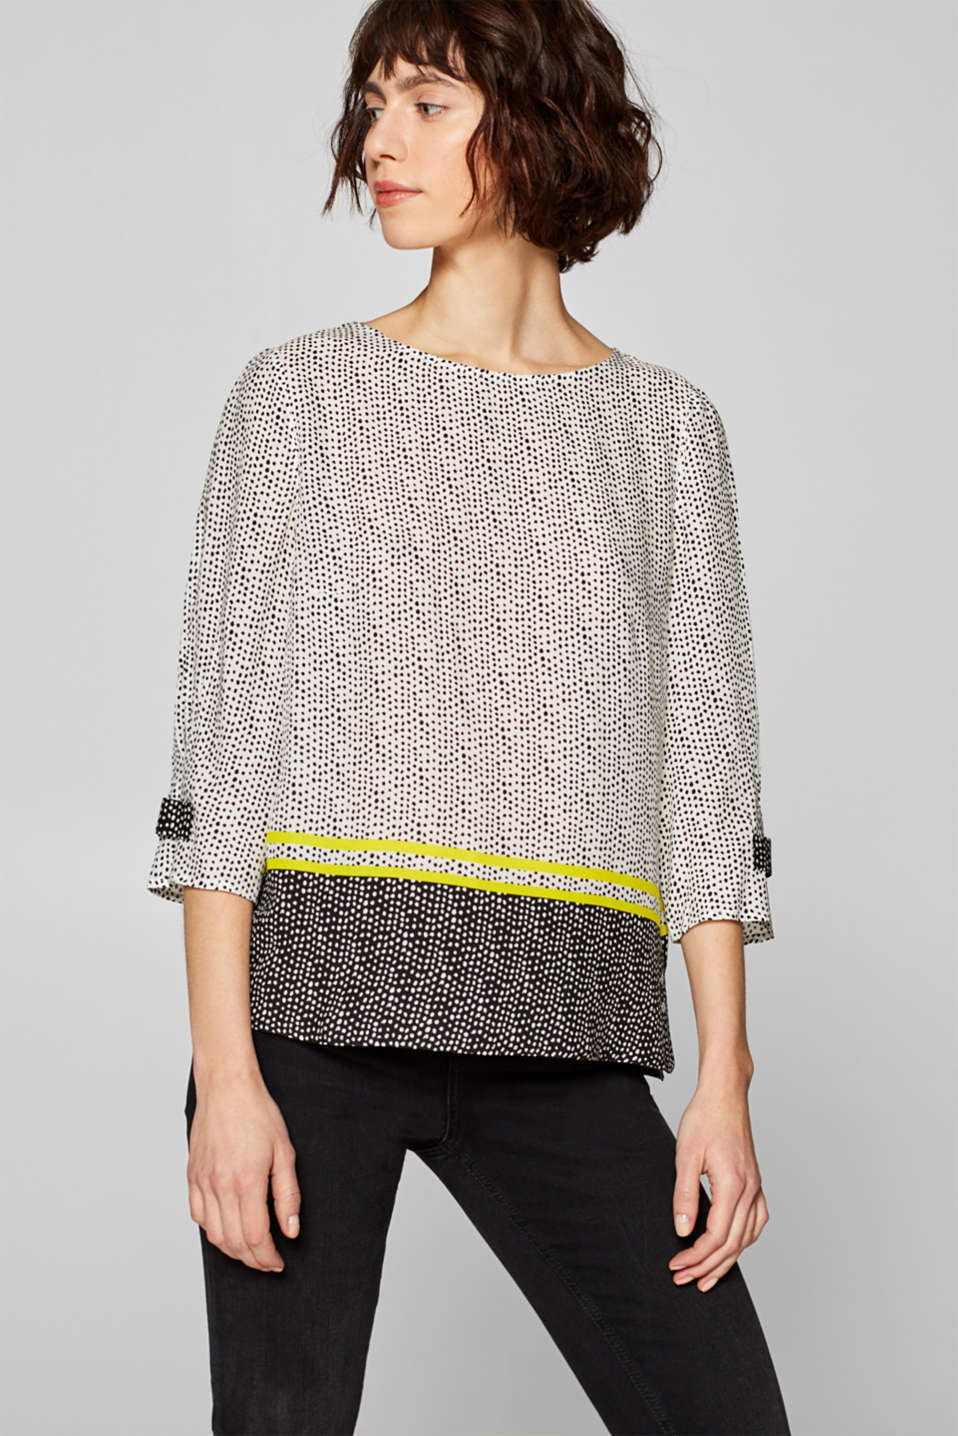 Esprit - Blouse with a polka dot print